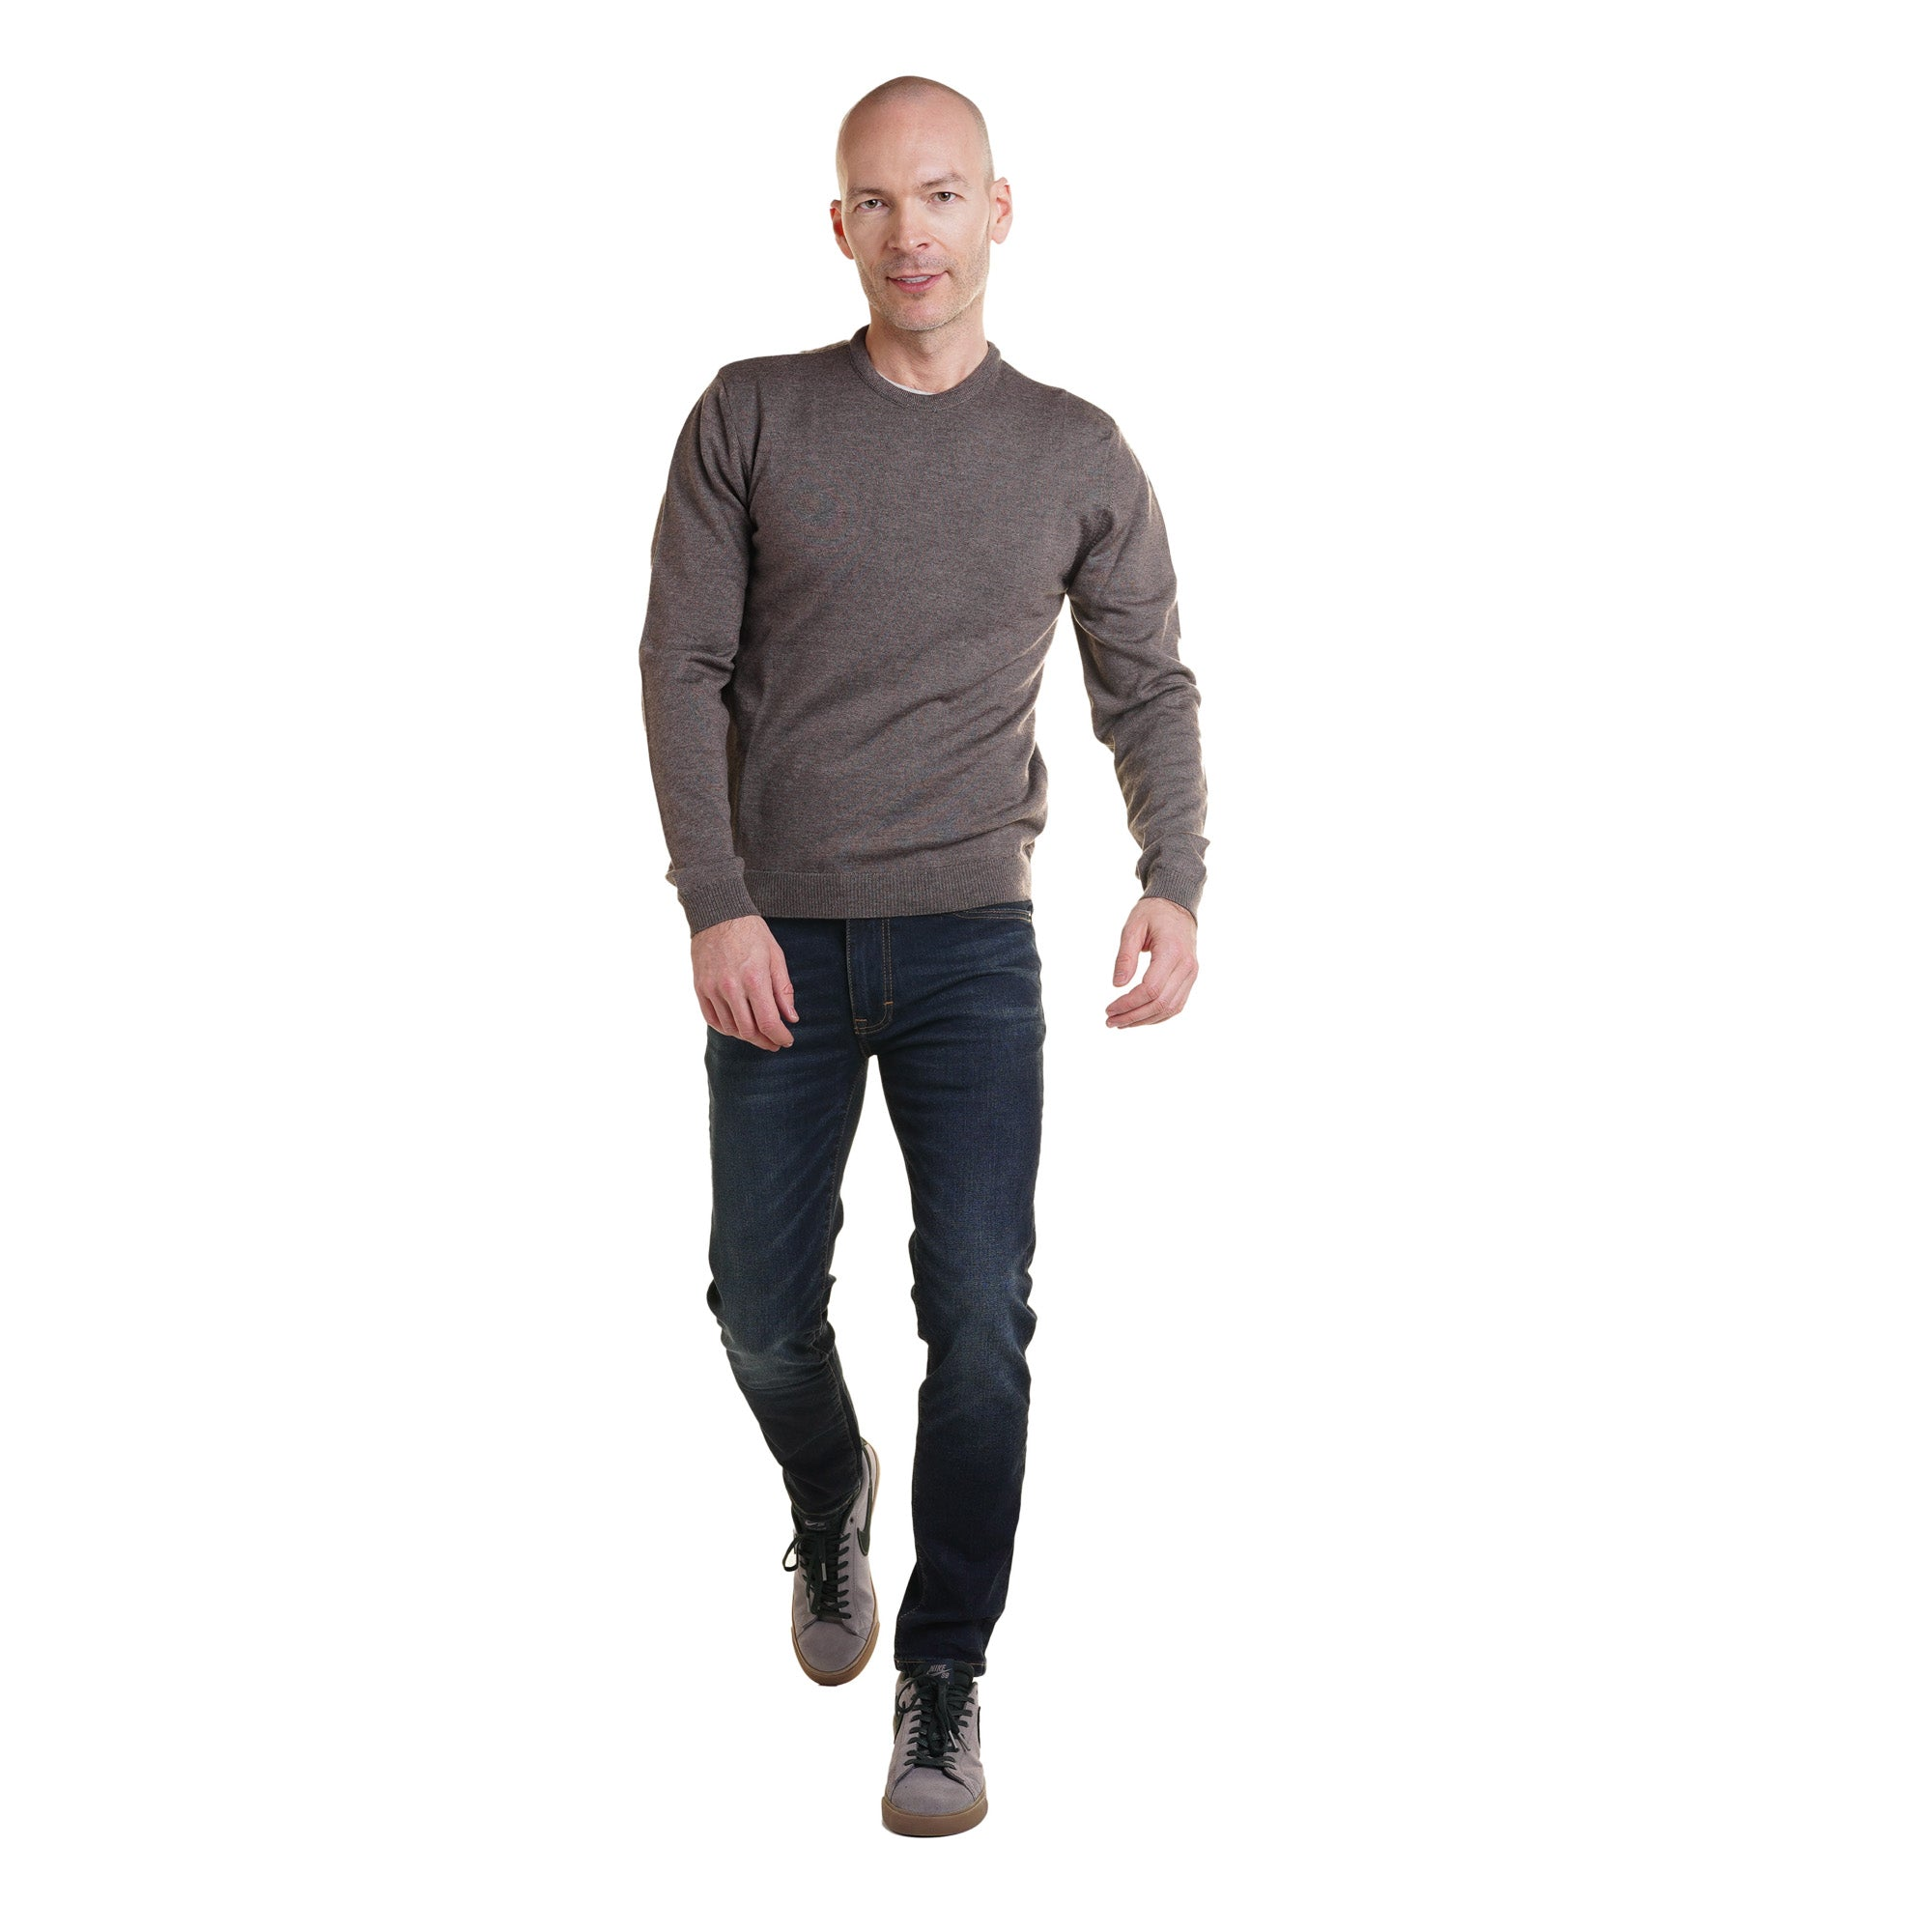 Zegna Merino Wool Crew Neck Sweaters - Heather Brown